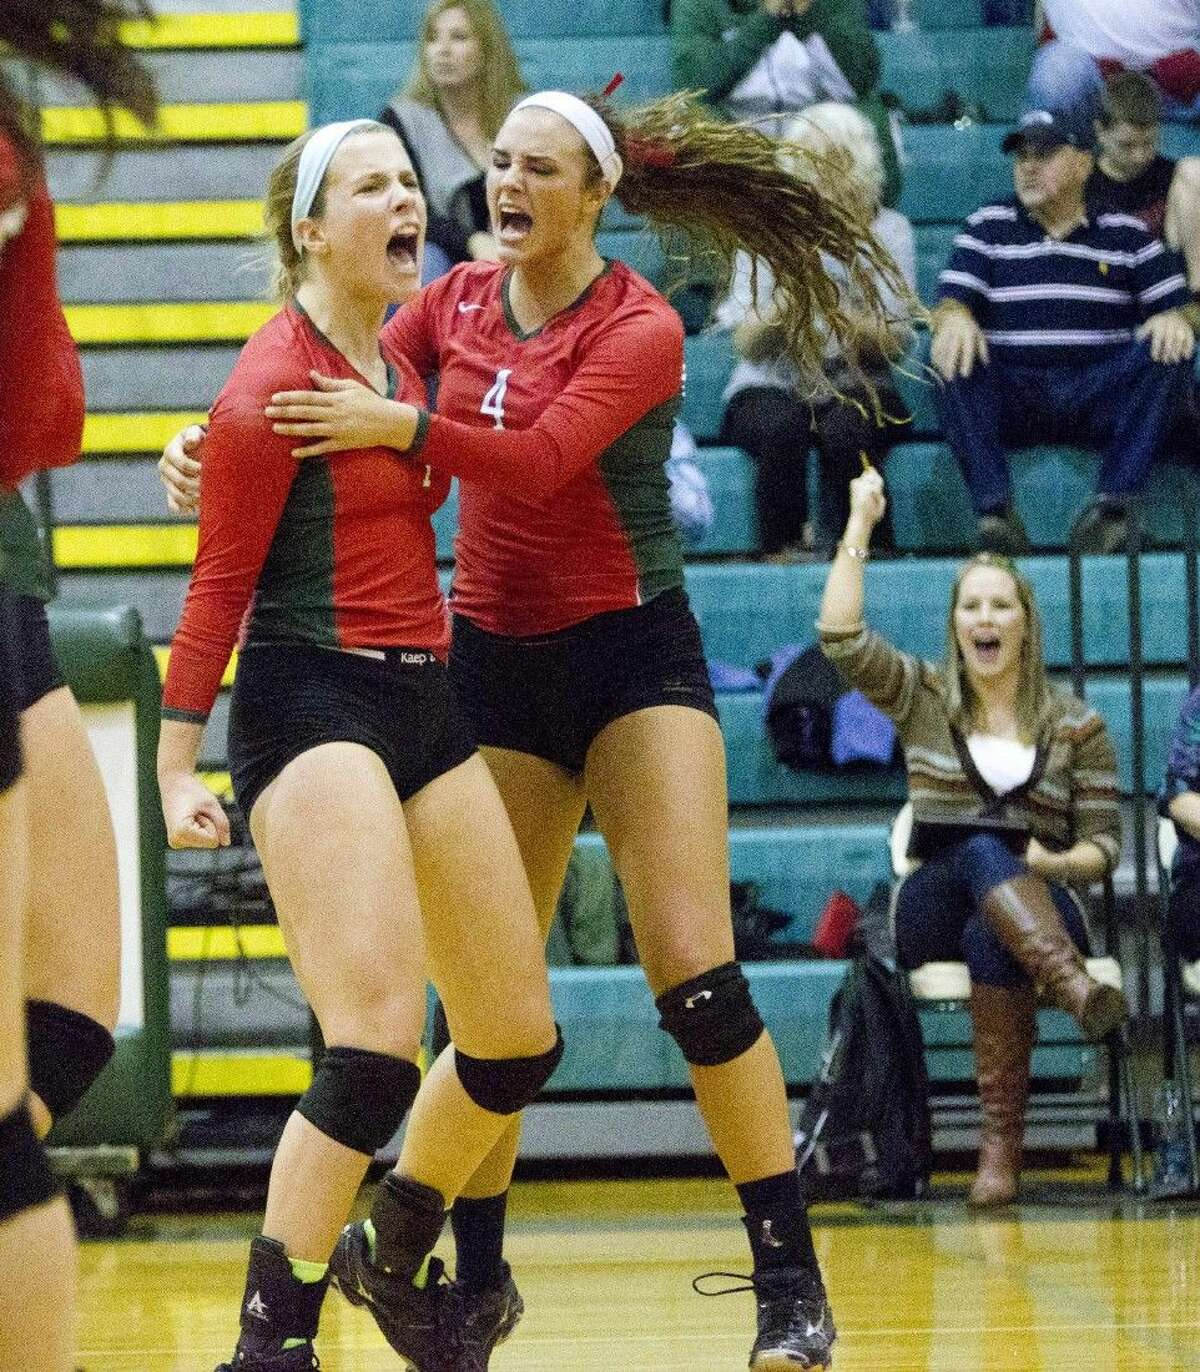 The Woodlands' Hannah Hickman, left, and Kendall Cook celebrate a point during a Region II-6A quarterfinal match against Round Rock Westwood on Tuesday at Brenham High School. To view or purchase this photo and others like it, visit HCNpics.com.